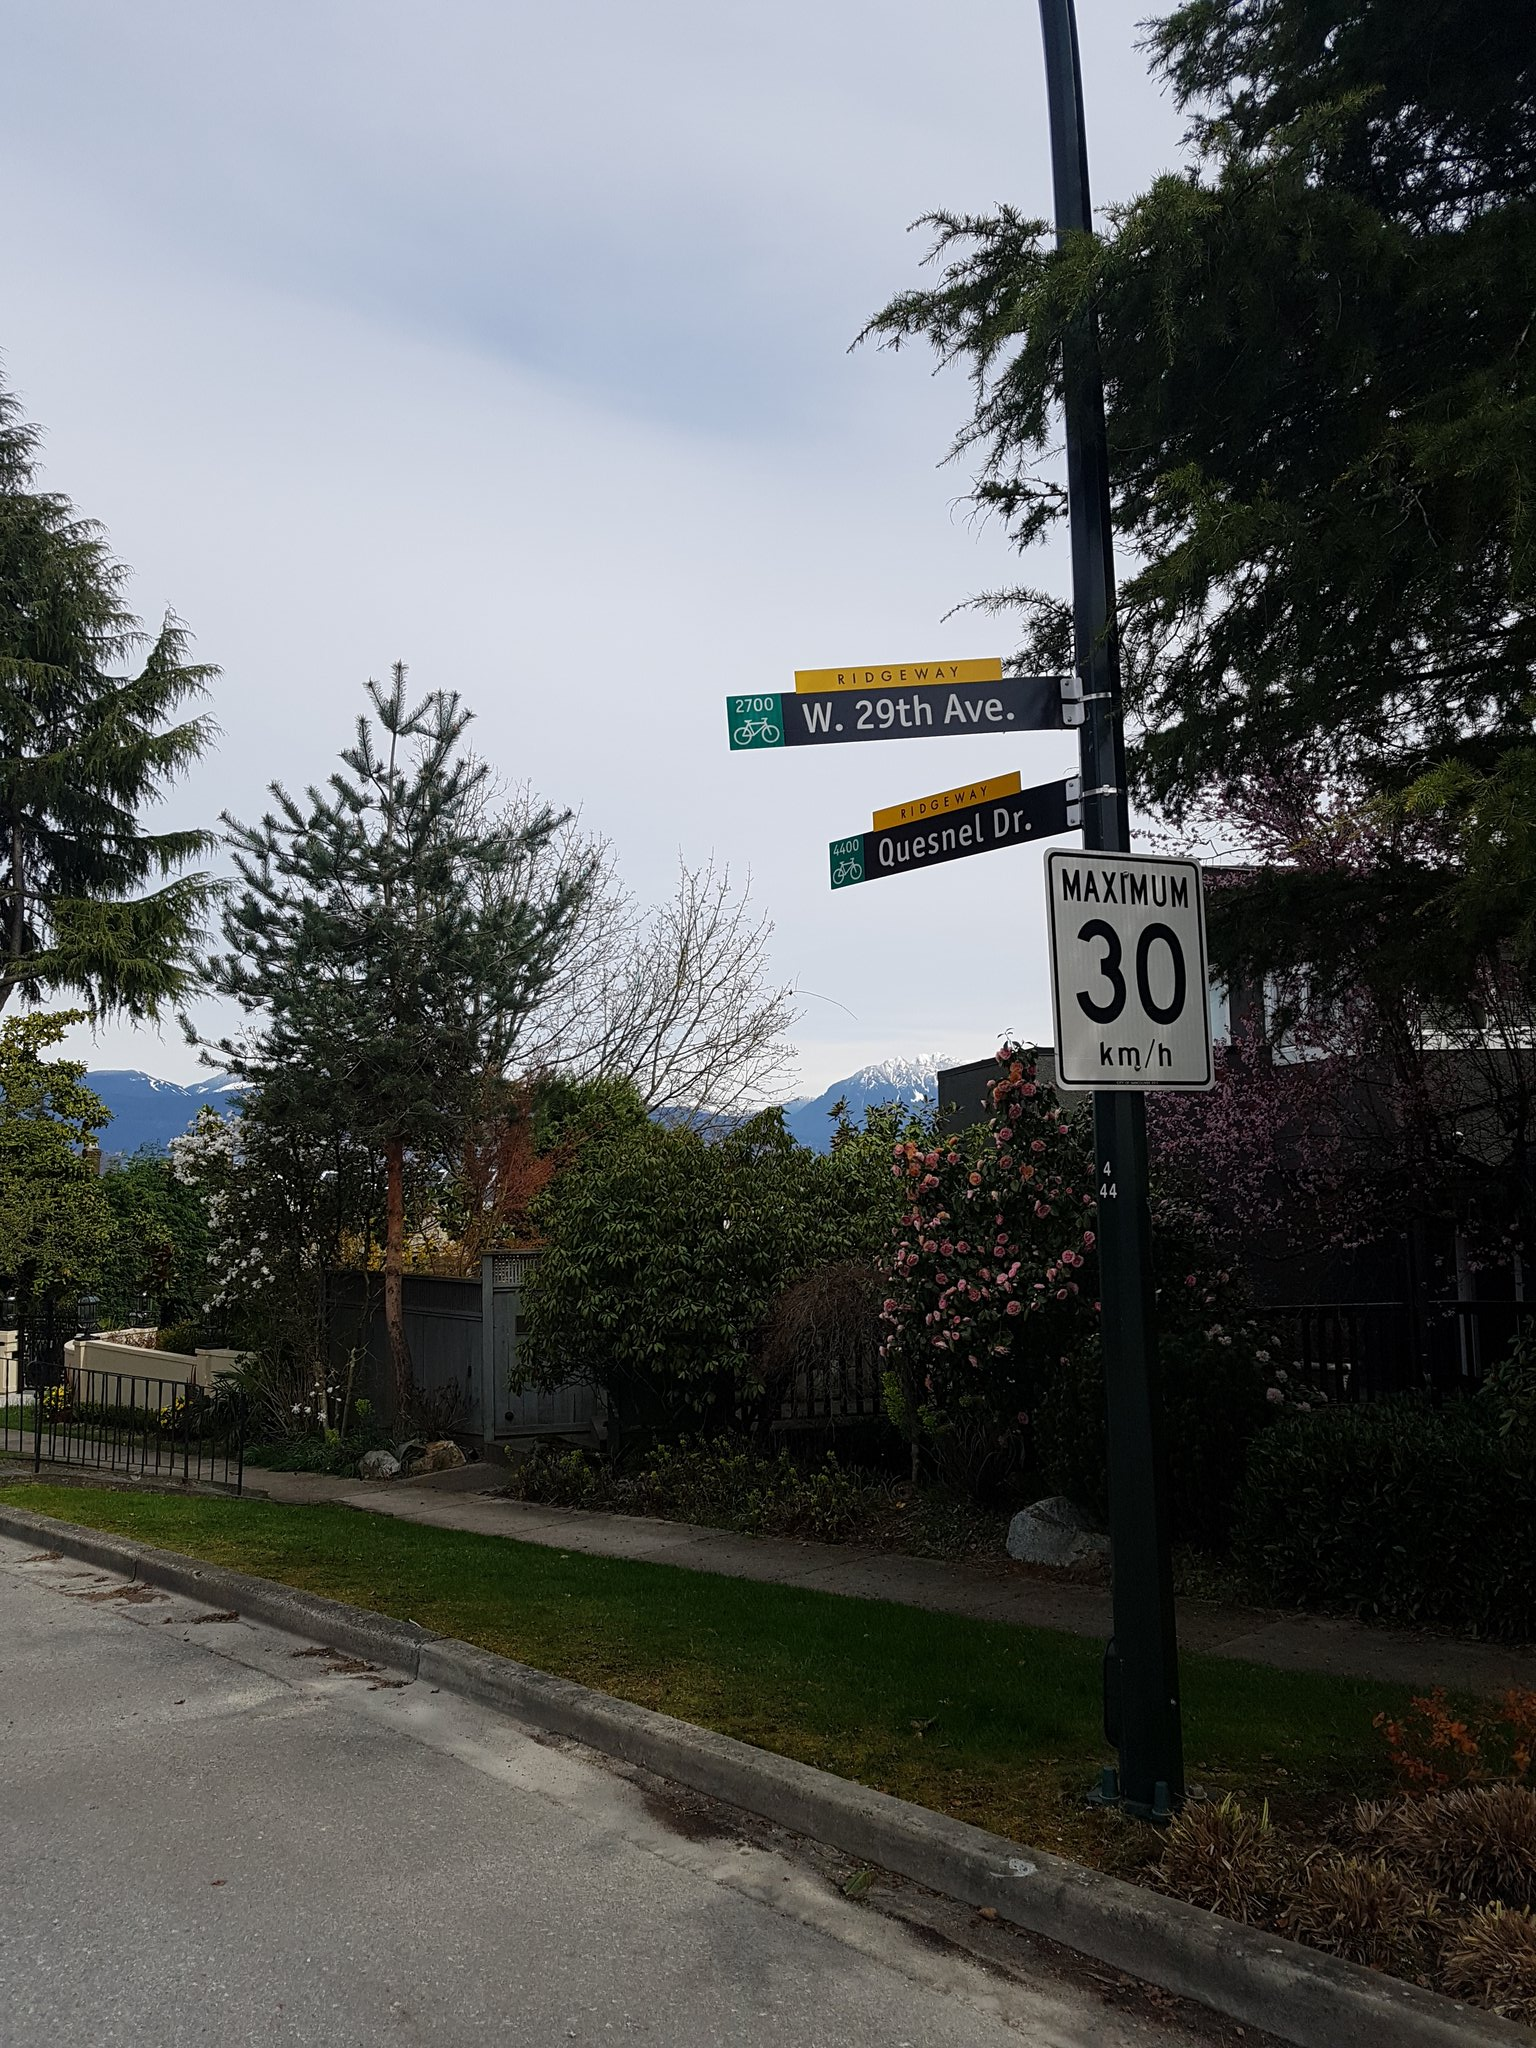 Vancouver has a great wayfinding system built right into the street signs #yyjbike https://t.co/uXrvzmuxwo